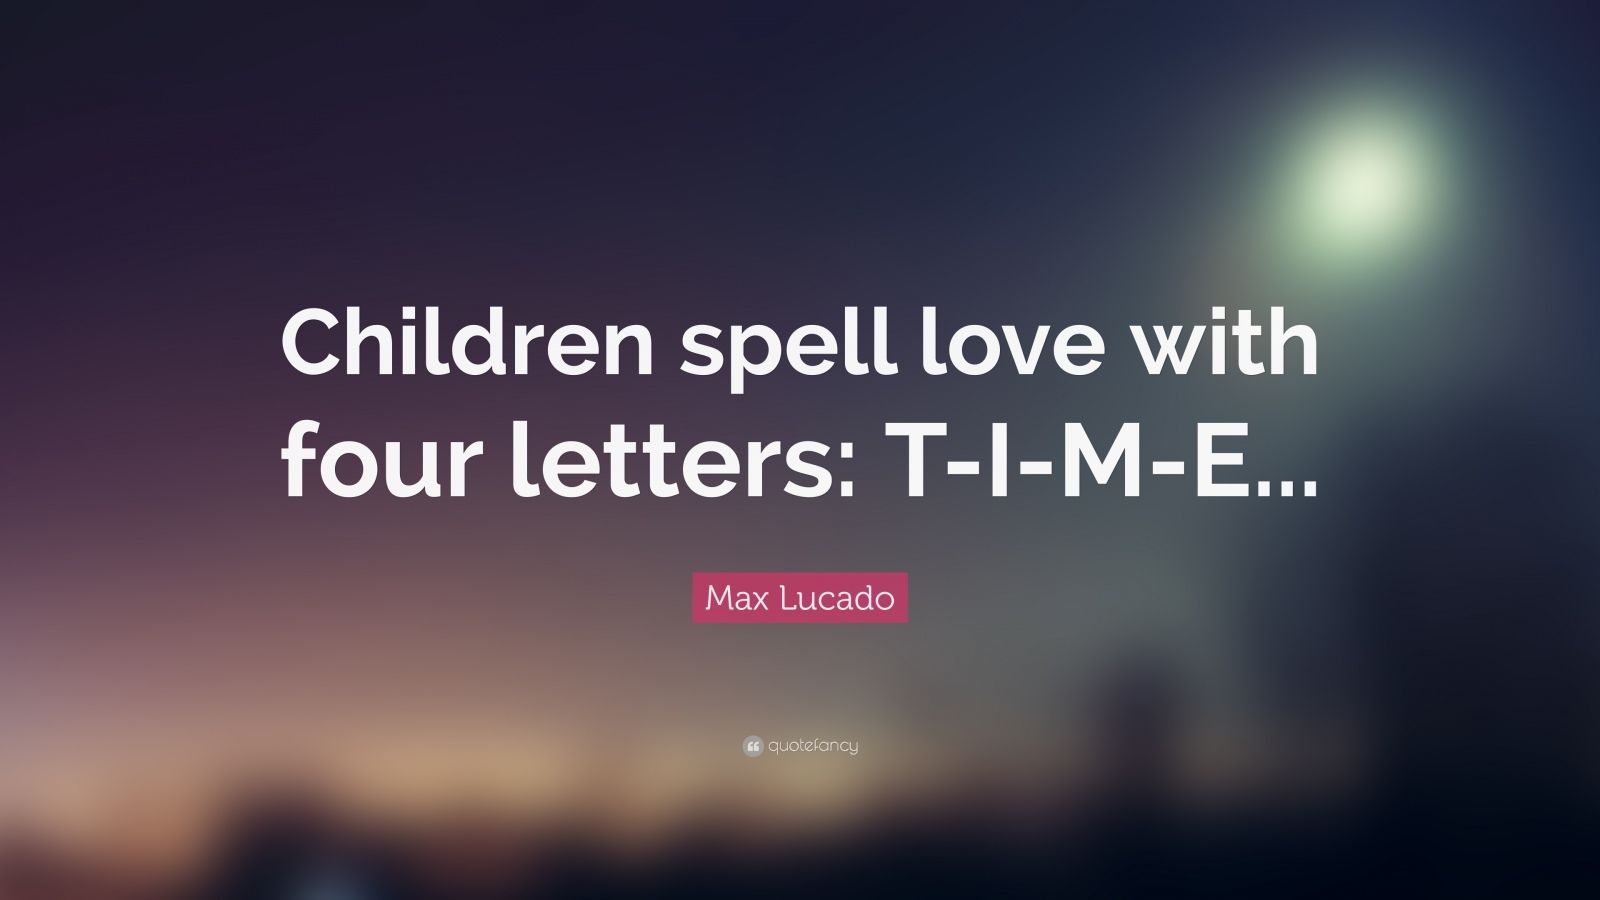 4 Letter Quotes About Love : Max Lucado Quote: ?Children spell love with four letters: T-I-M-E ...